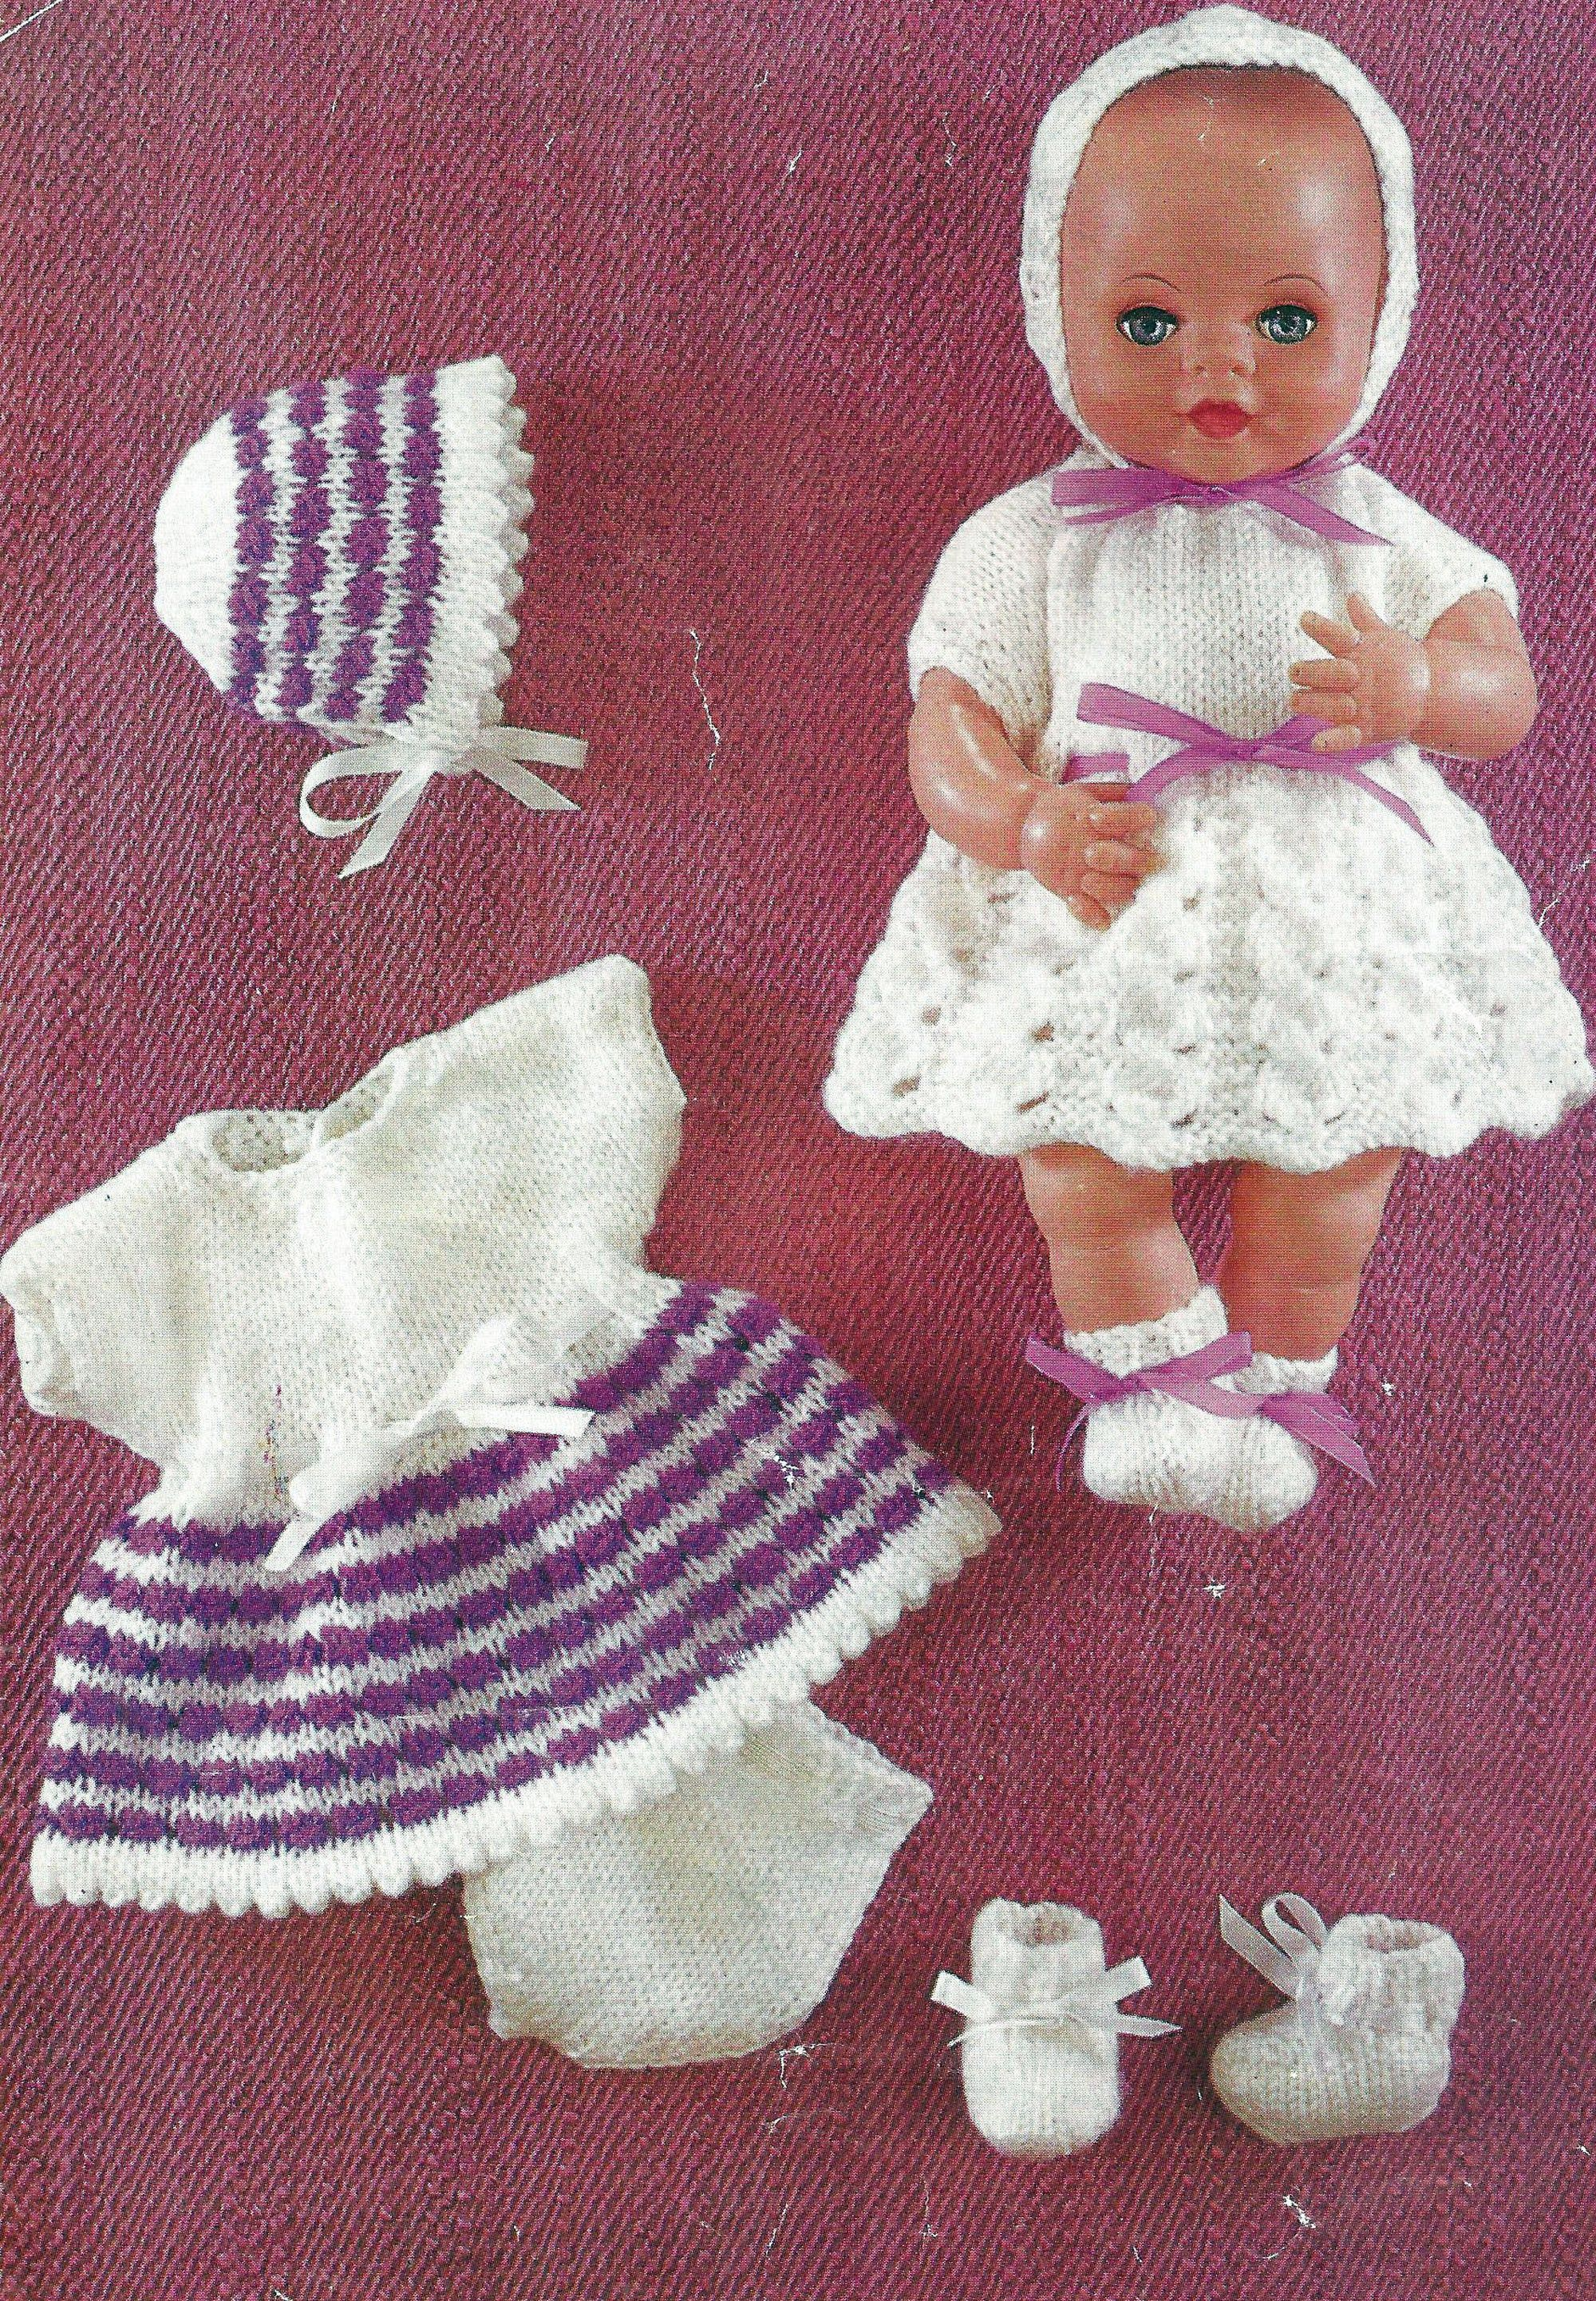 Pdf Instant Digital Download 12 Inch Dolls Clothes Baby Alive Tiny Tears Knitting Pattern 1714 Doll Clothes 12 Inch Doll Clothes Sirdar Knitting Patterns